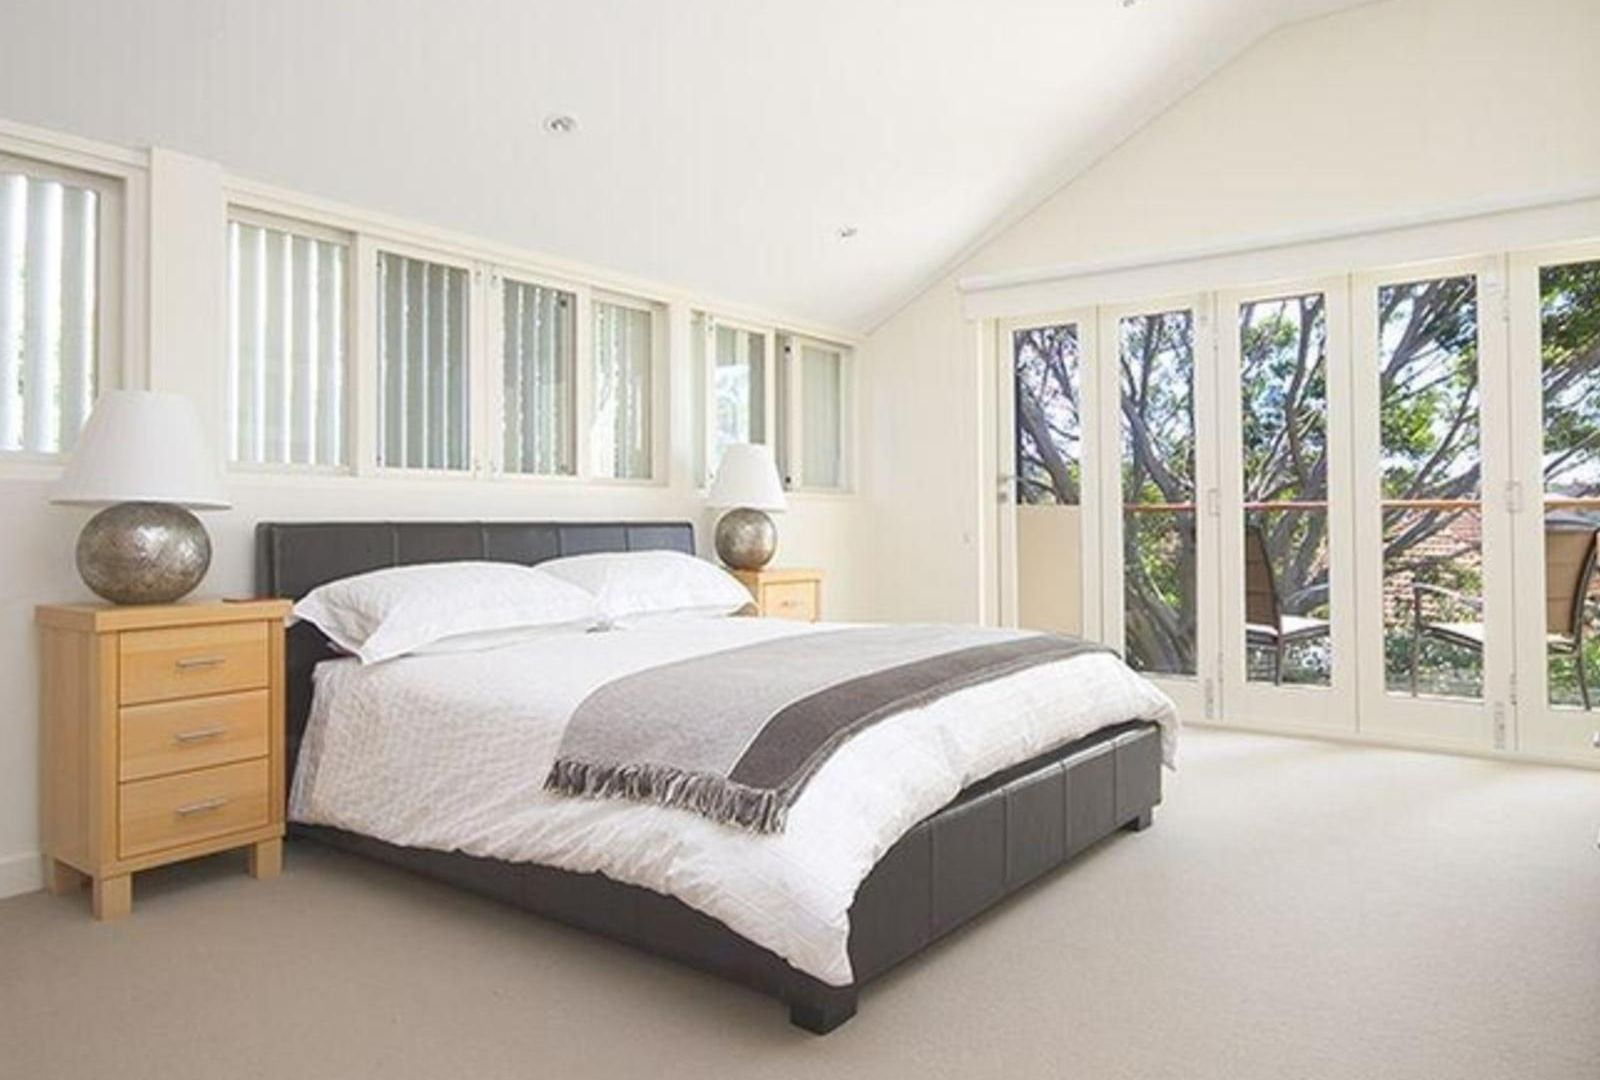 46 Whaling Road, North Sydney NSW 2060, Image 2